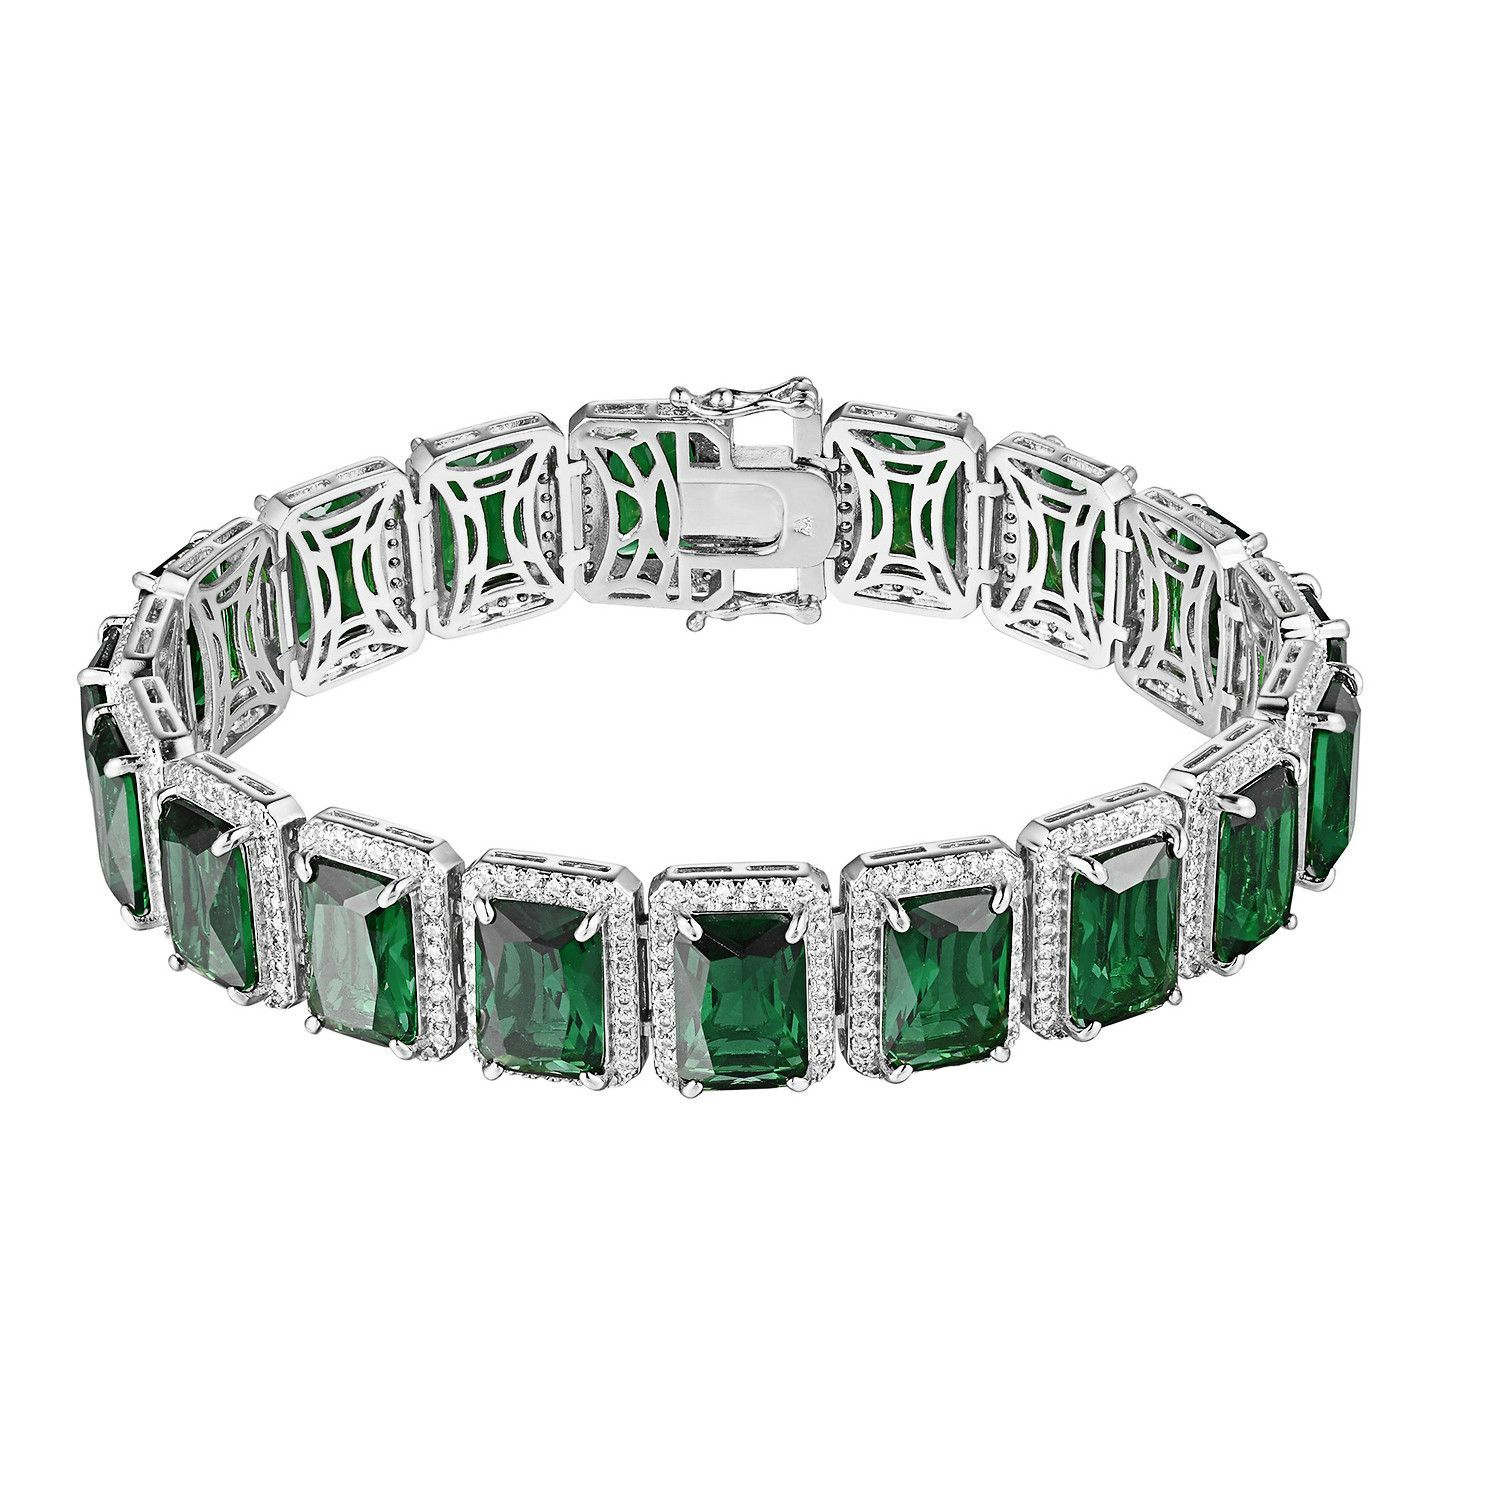 Green ruby cz bracelet silver tone iced out hip hop mm rick ross